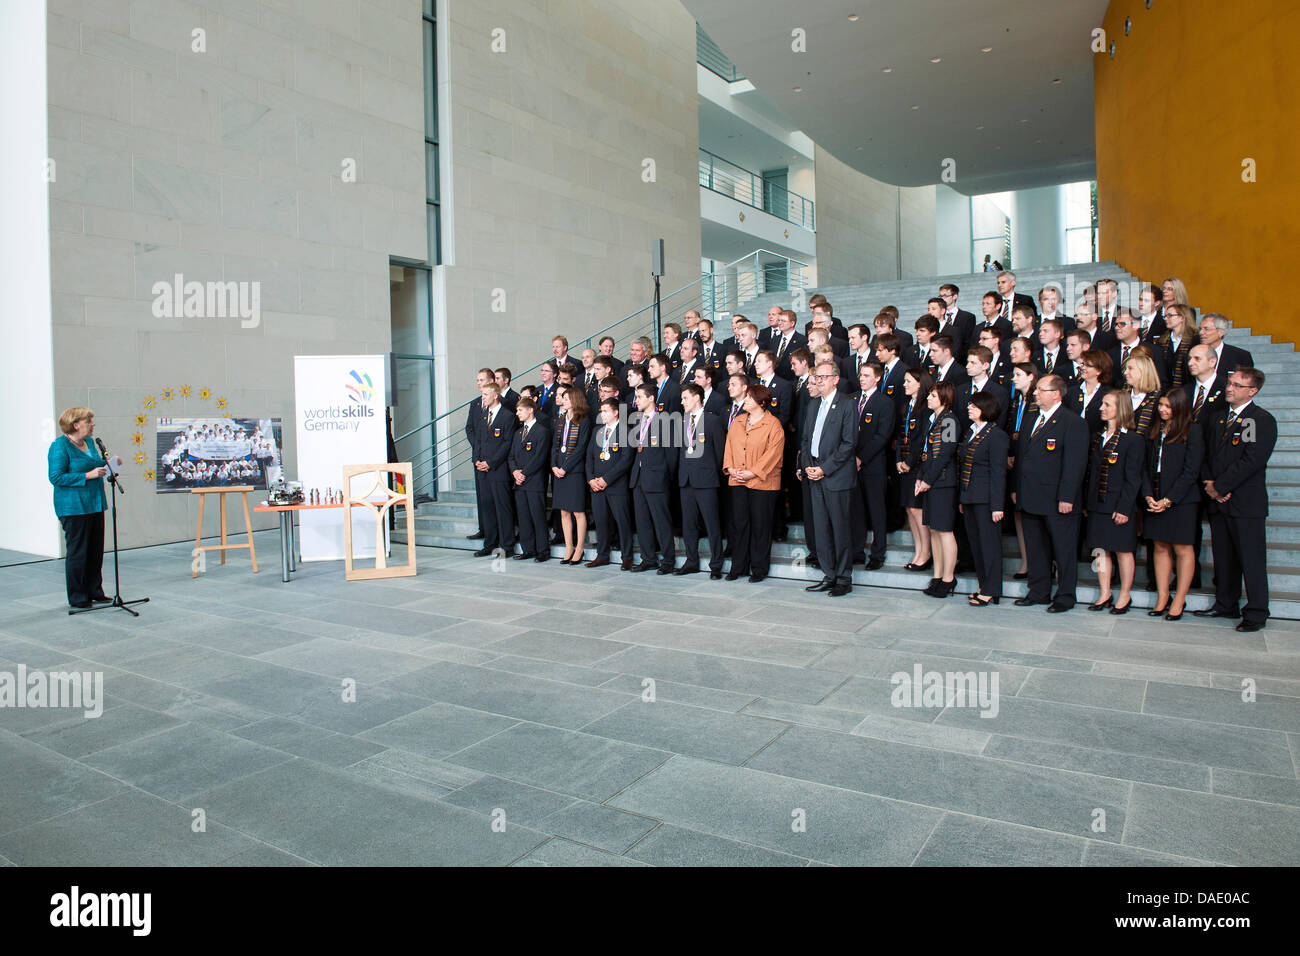 Berlin, Germany. July 11th 2013.   Federal Chancellor Angela Merkel receives the german participants of the 'WorldSkills' - Stock Image